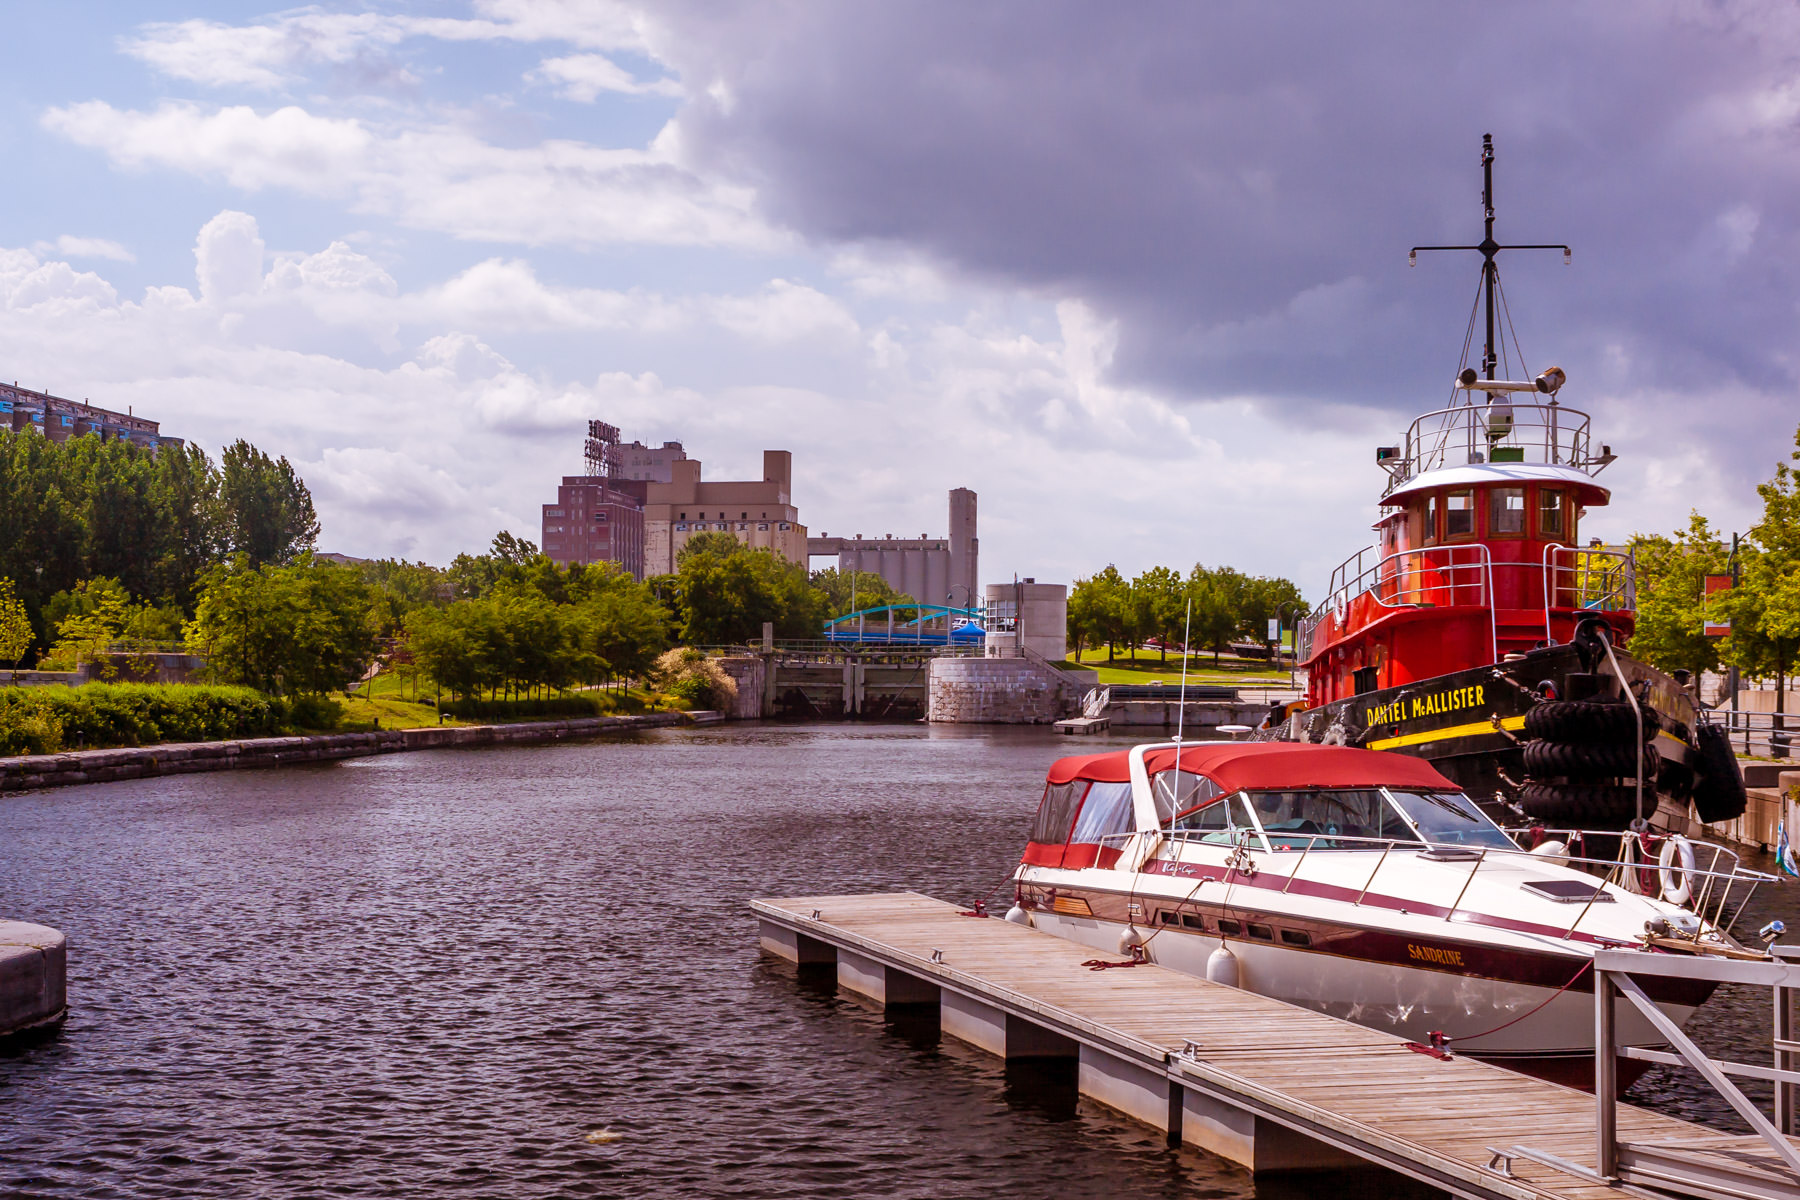 Boats docked along Montréal's Canal de Lachine as storm clouds roll in.